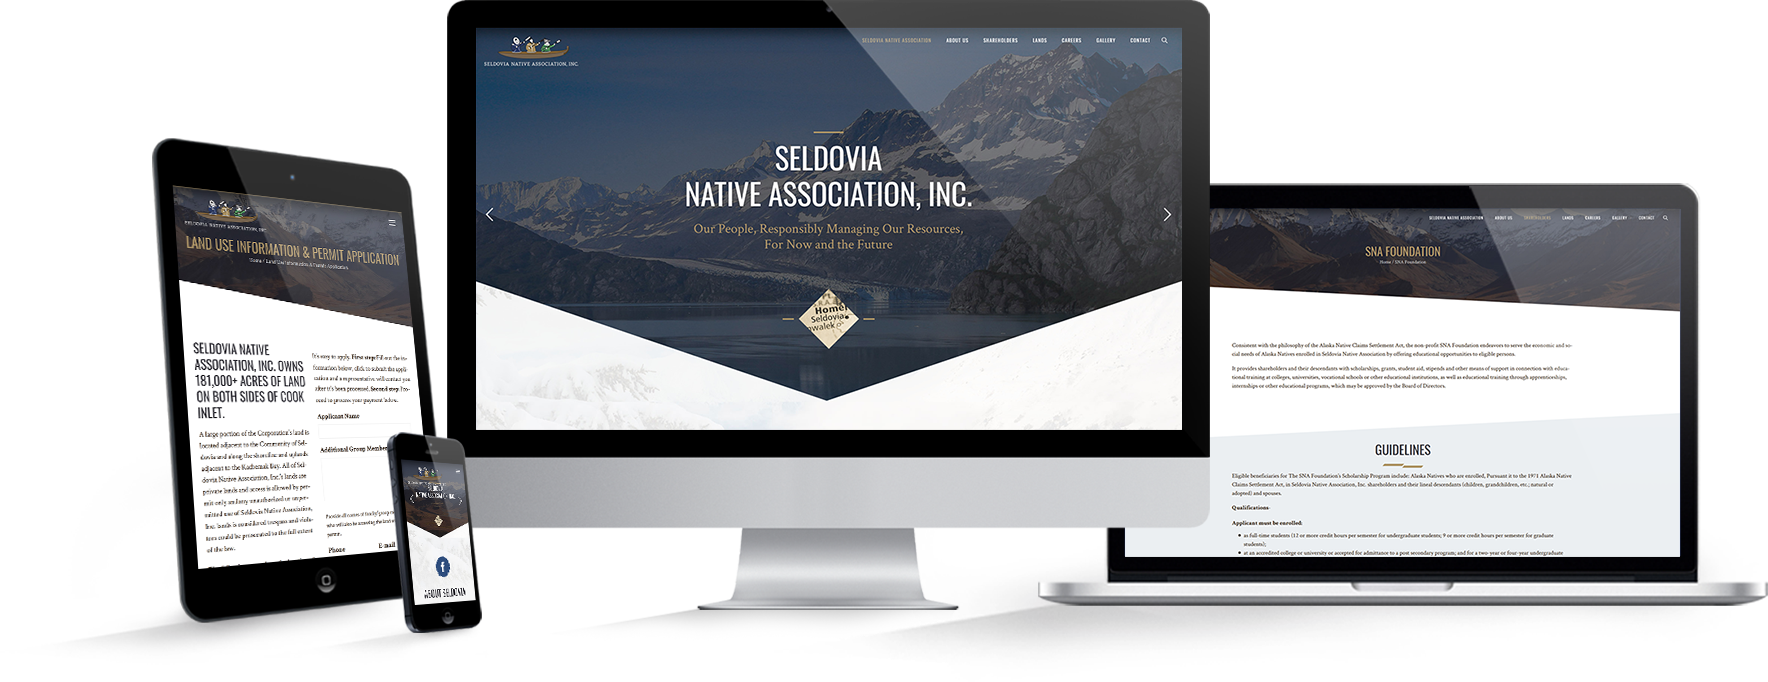 Seldovia-Screens